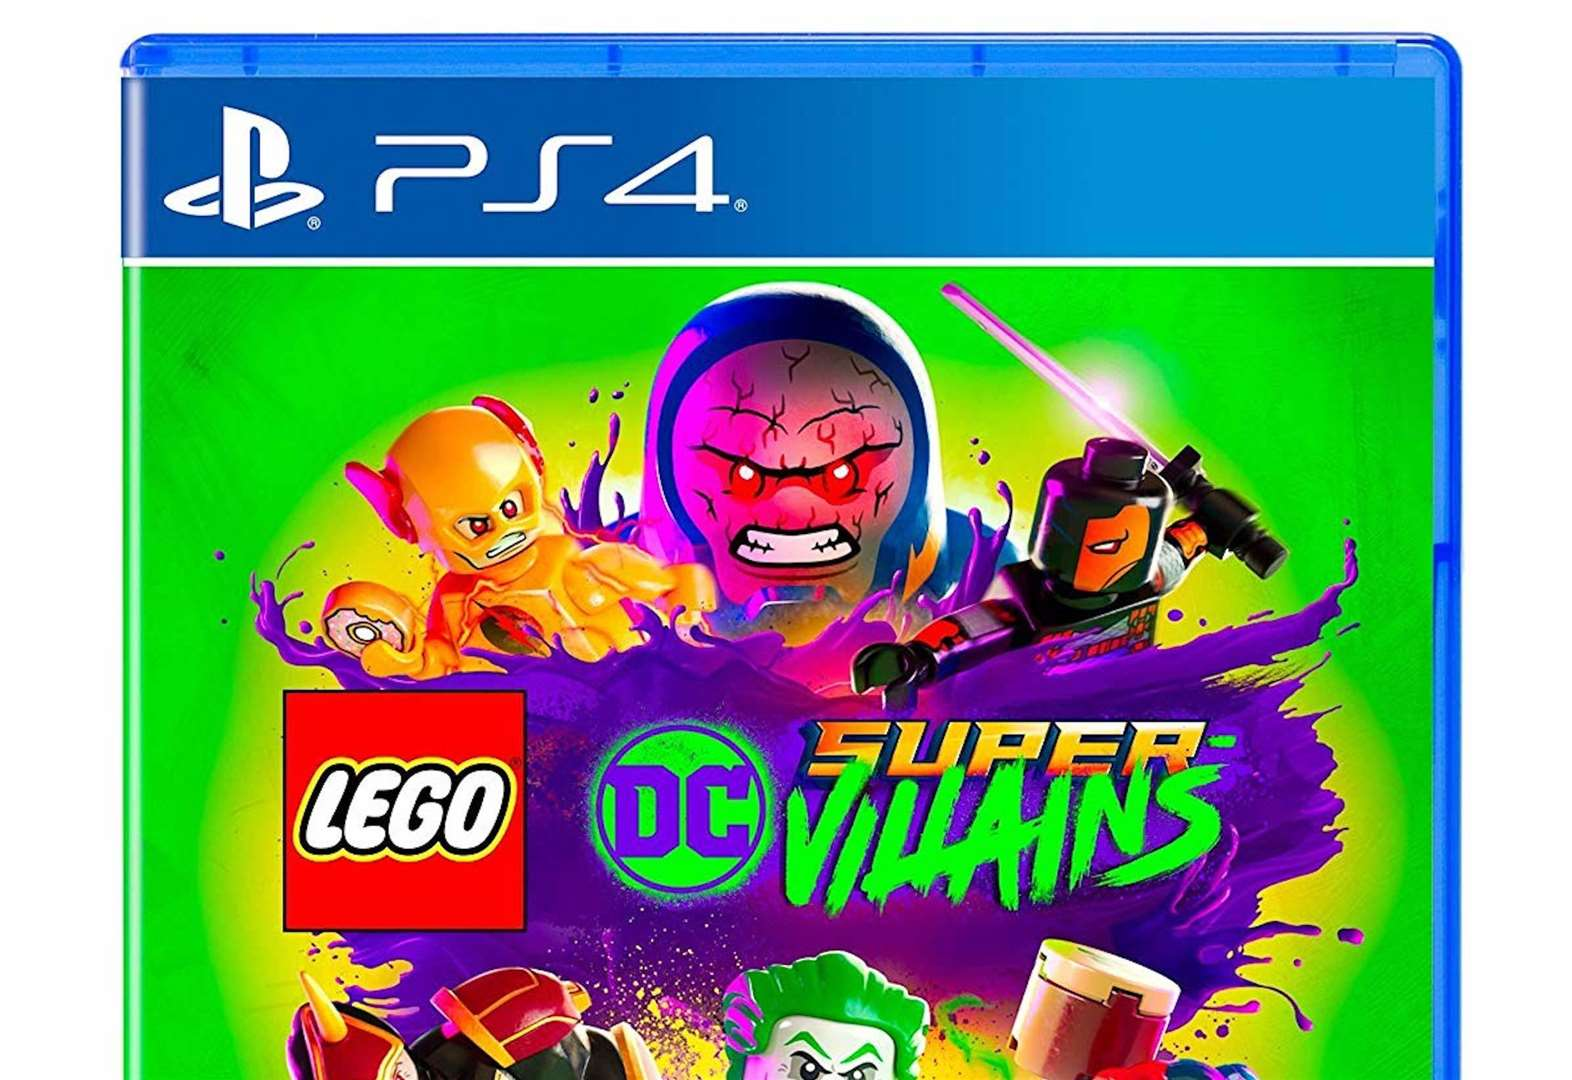 VIDEO GAME REVIEW: LEGO DC SUPER-VILLAINS